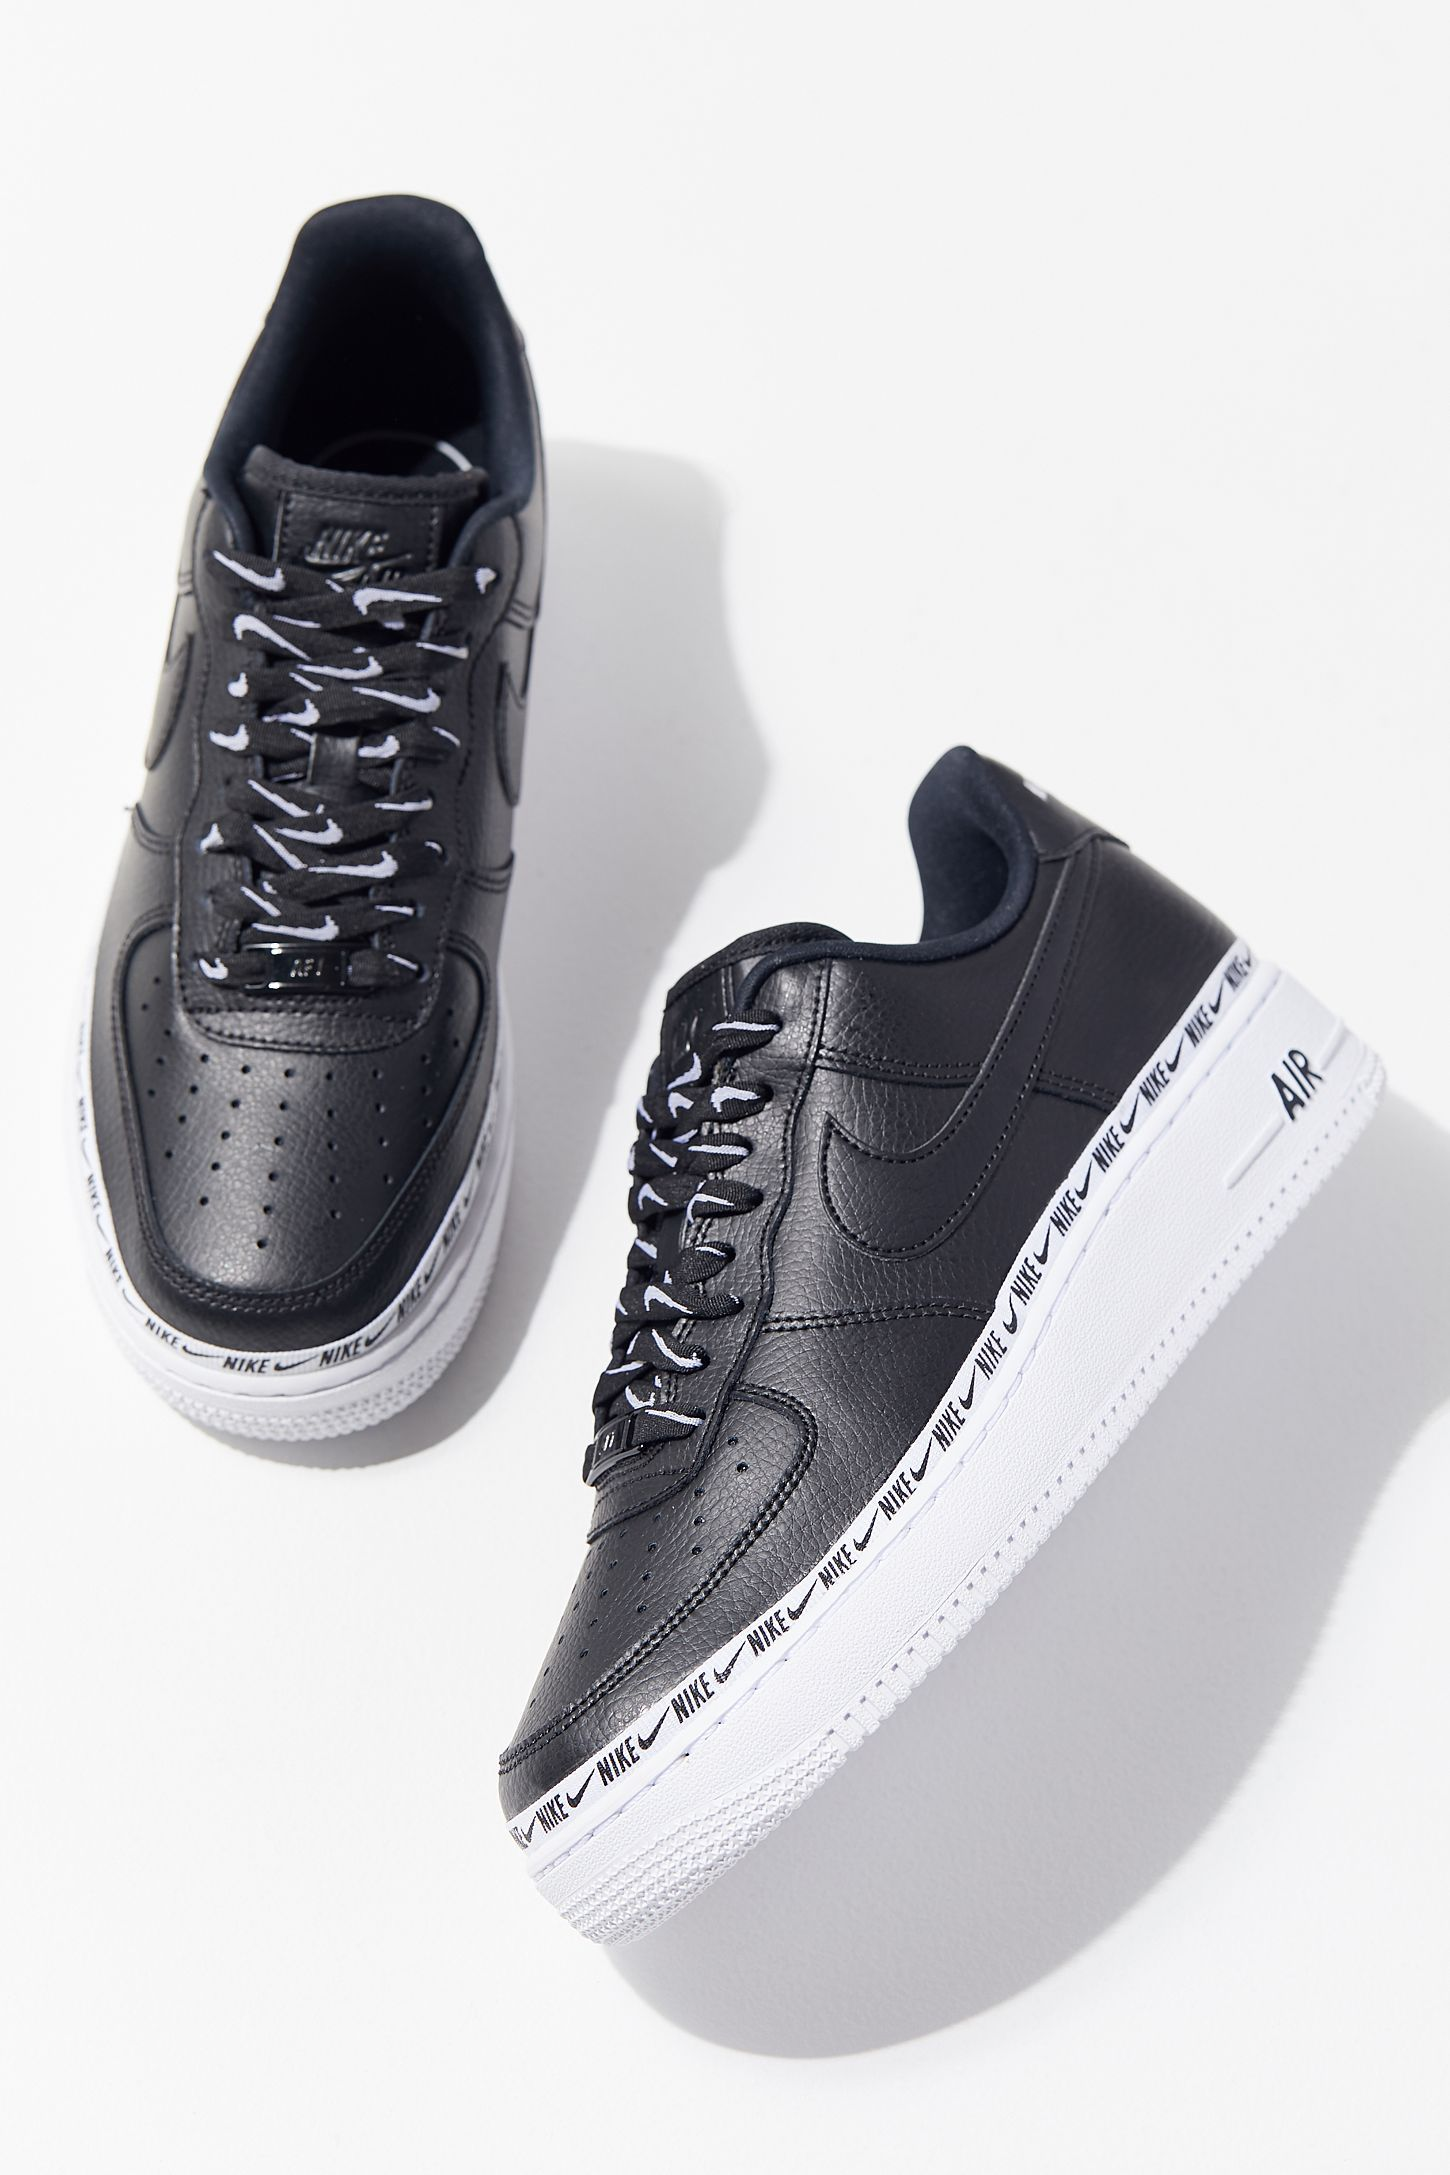 Slide View  6  Nike Air Force 1  07 SE Premium Overbranded Sneaker c355bedde